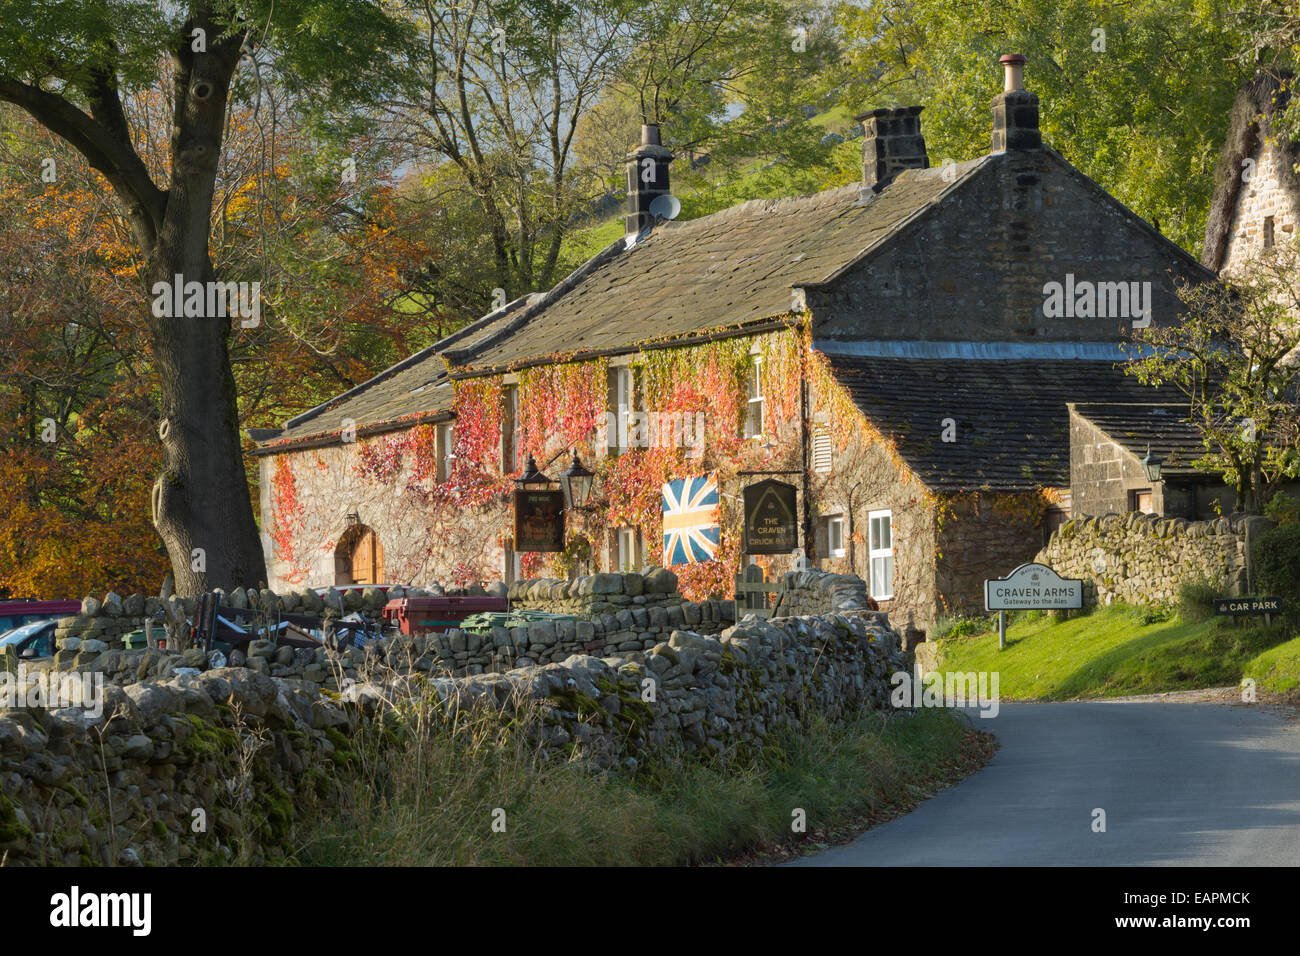 The Craven Arms, Appletreewick, Wharfdale in The Yorkshire dales, England. - Stock Image